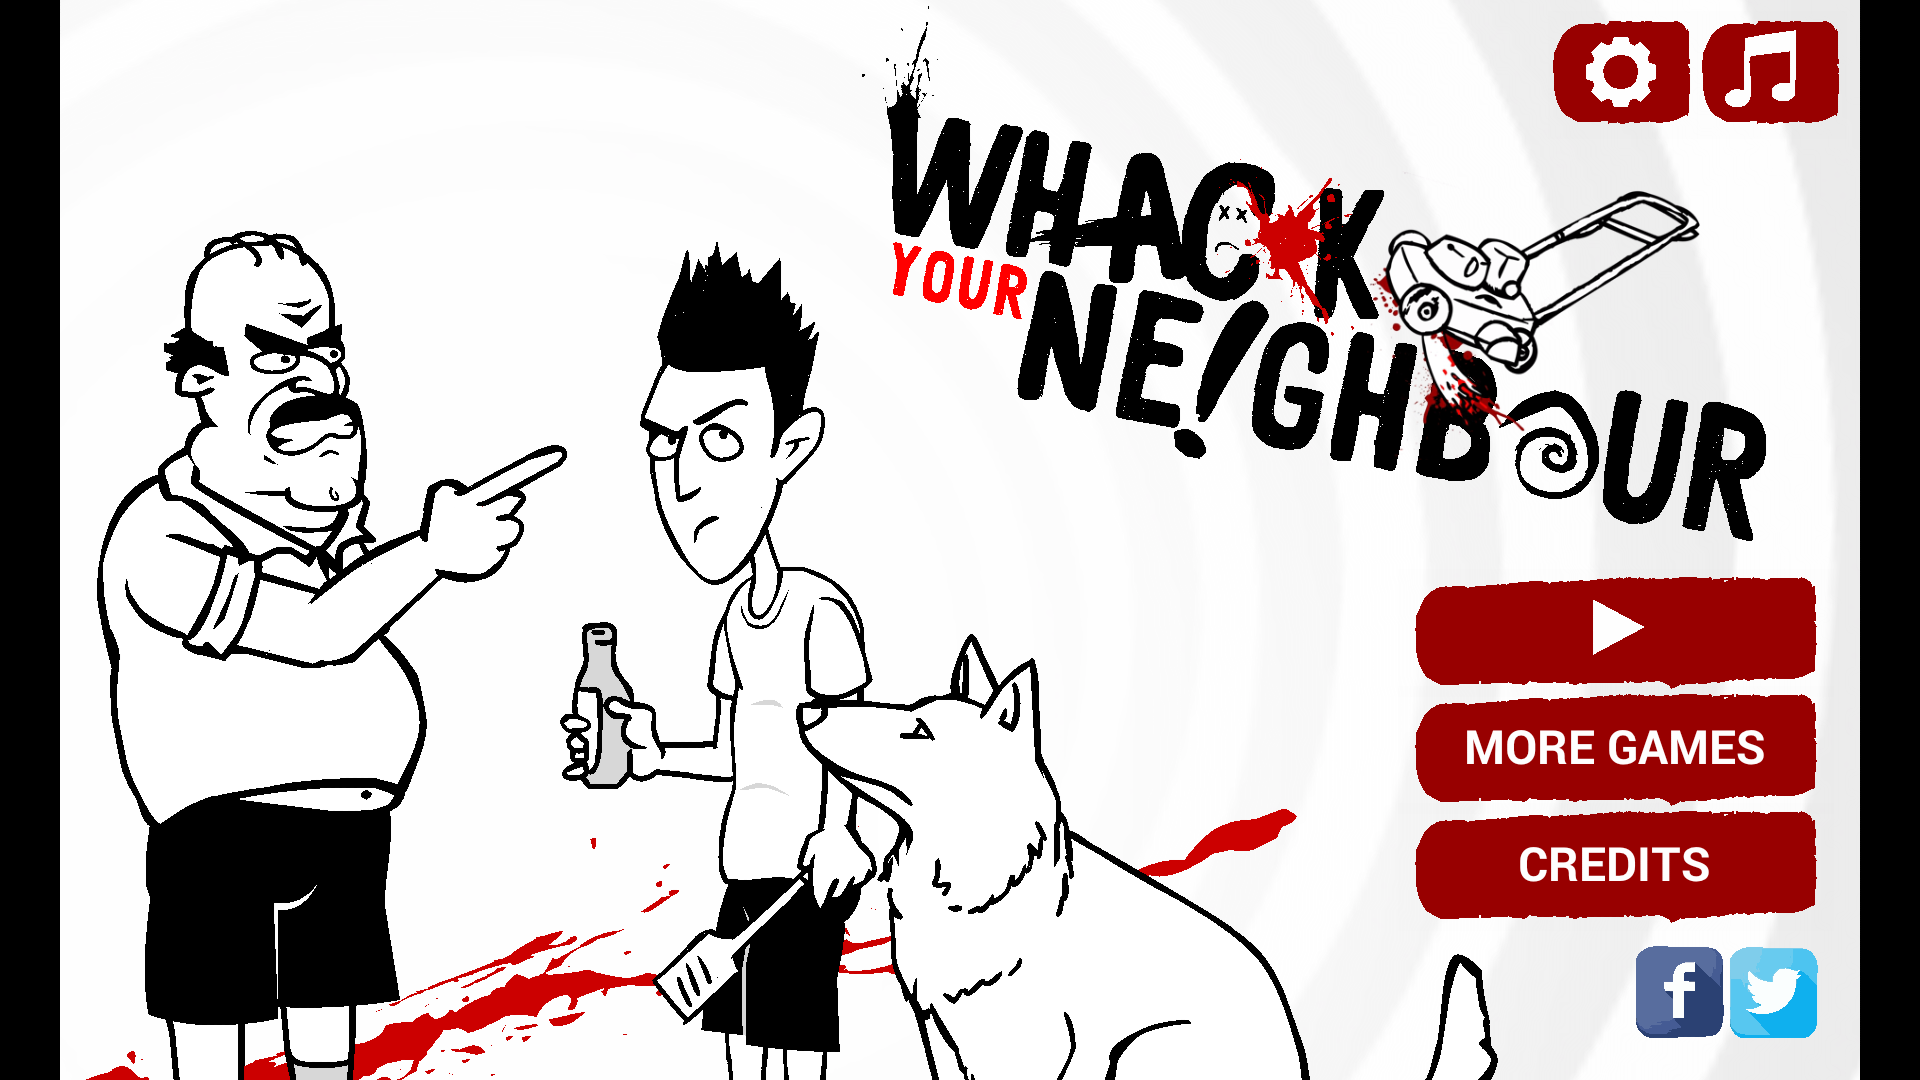 androidアプリ Whack Your Neighbour【R-18】攻略スクリーンショット1